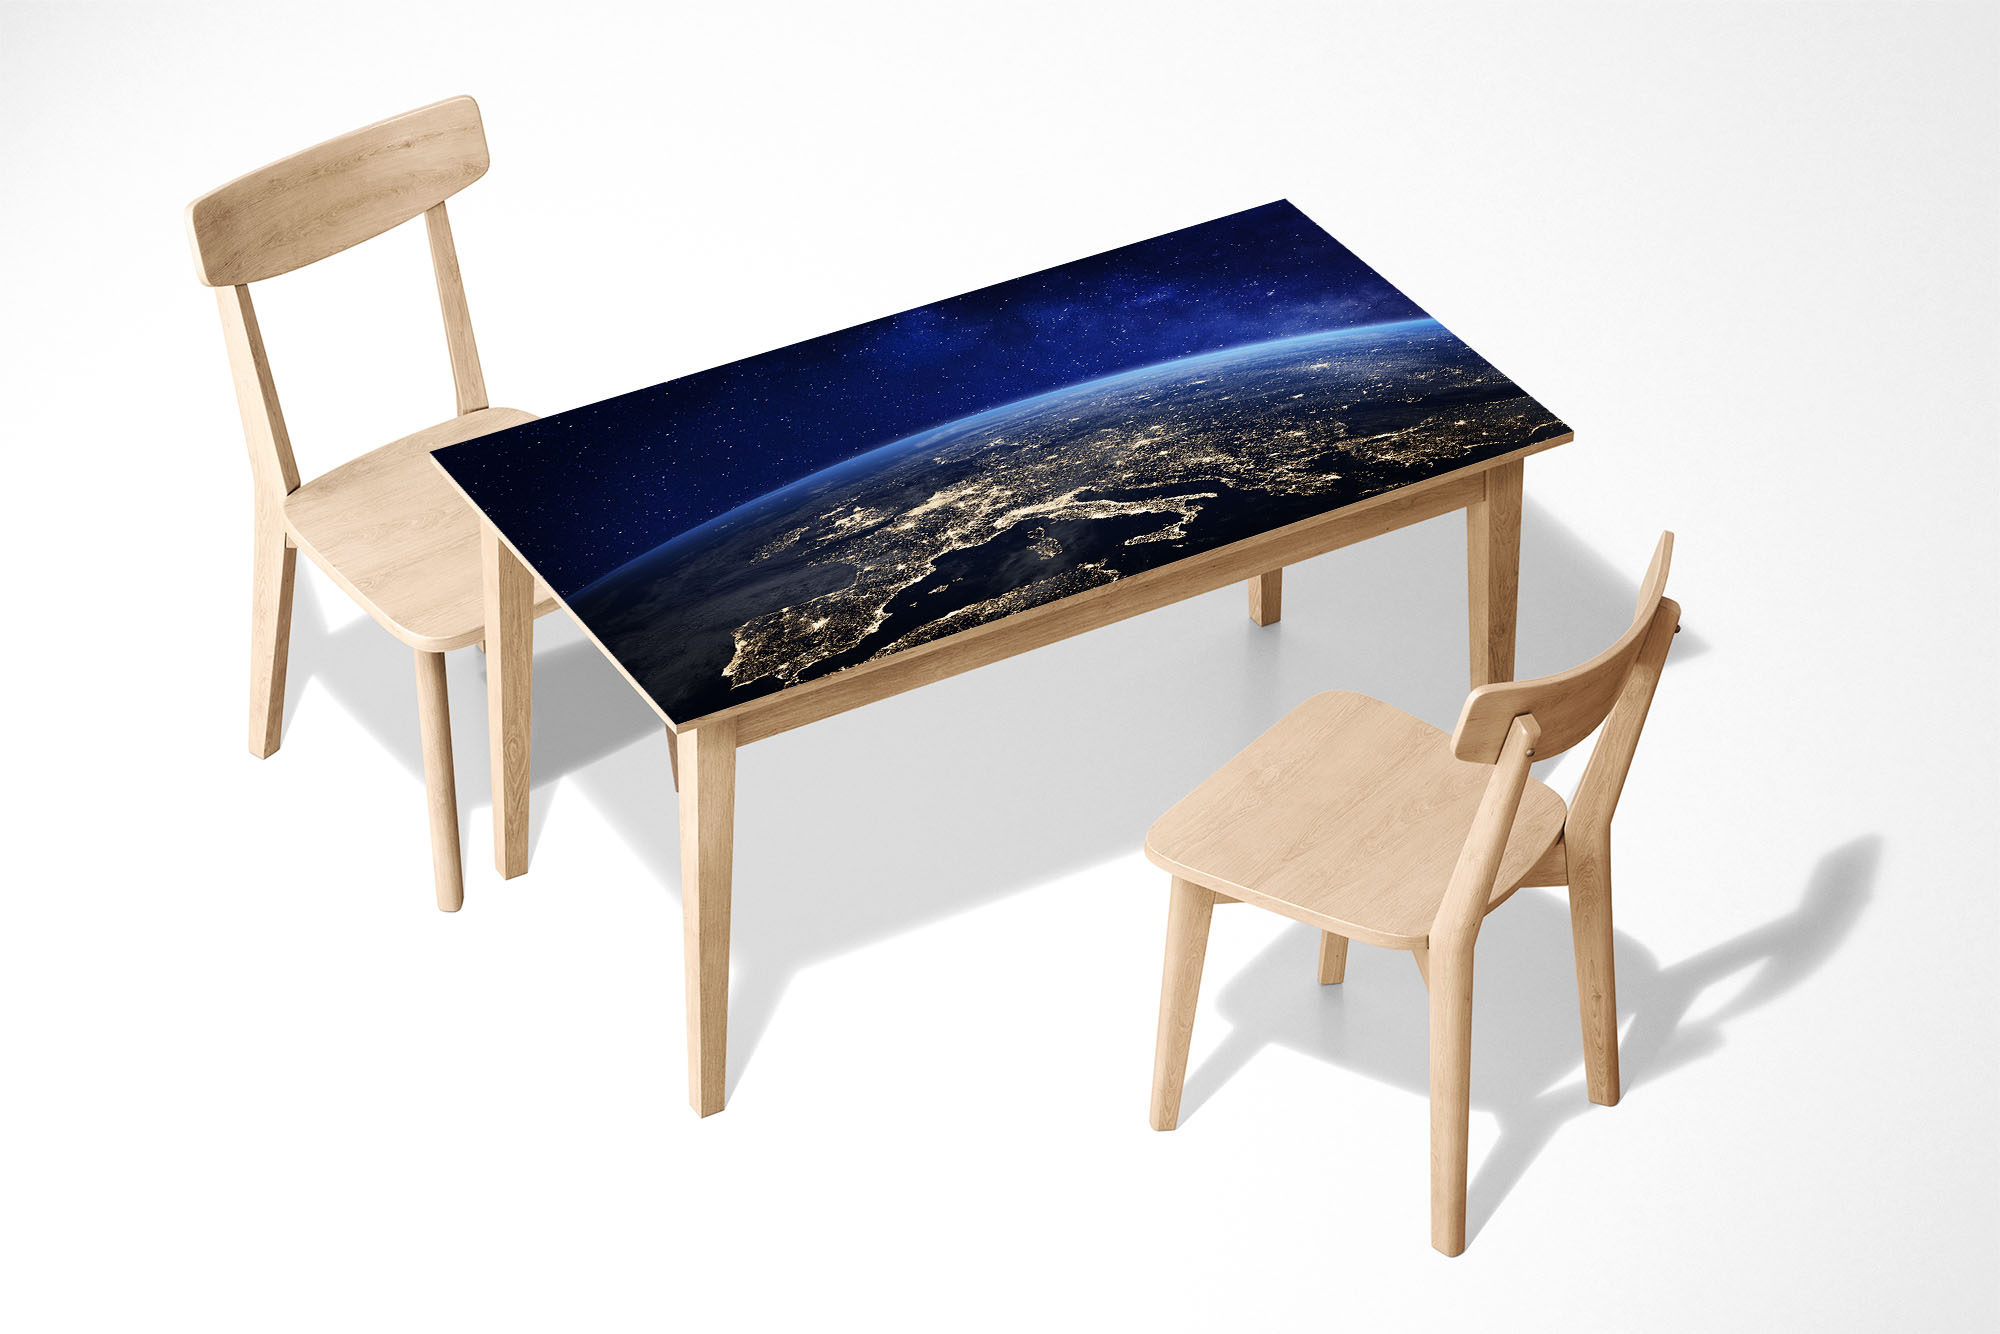 View Europe from Space Laminated Self Adhesive Vinyl Table Desk Art Décor Cover